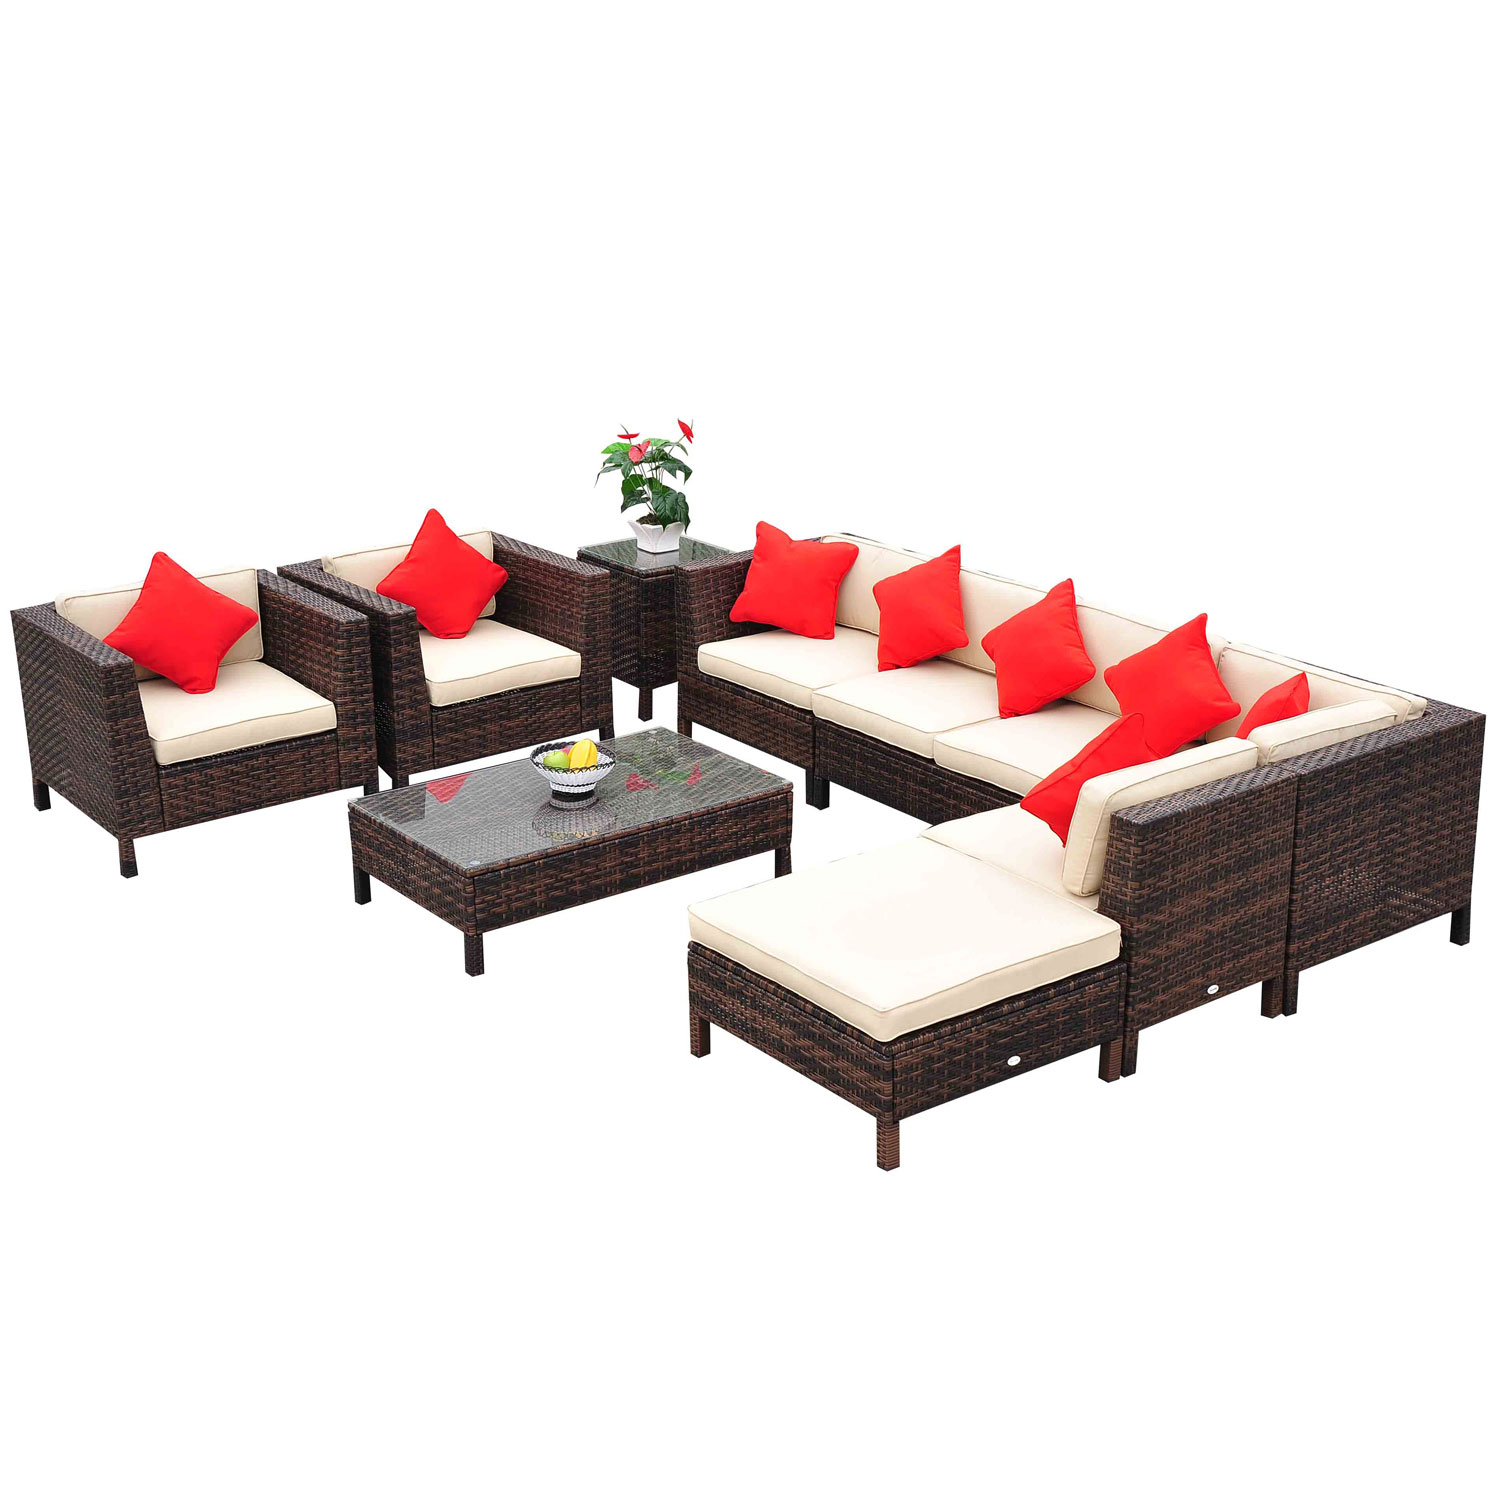 Outsunny 9-Piece Outdoor PE Rattan Wicker Sectional Patio Sofa Chair Set by Aosom LLC